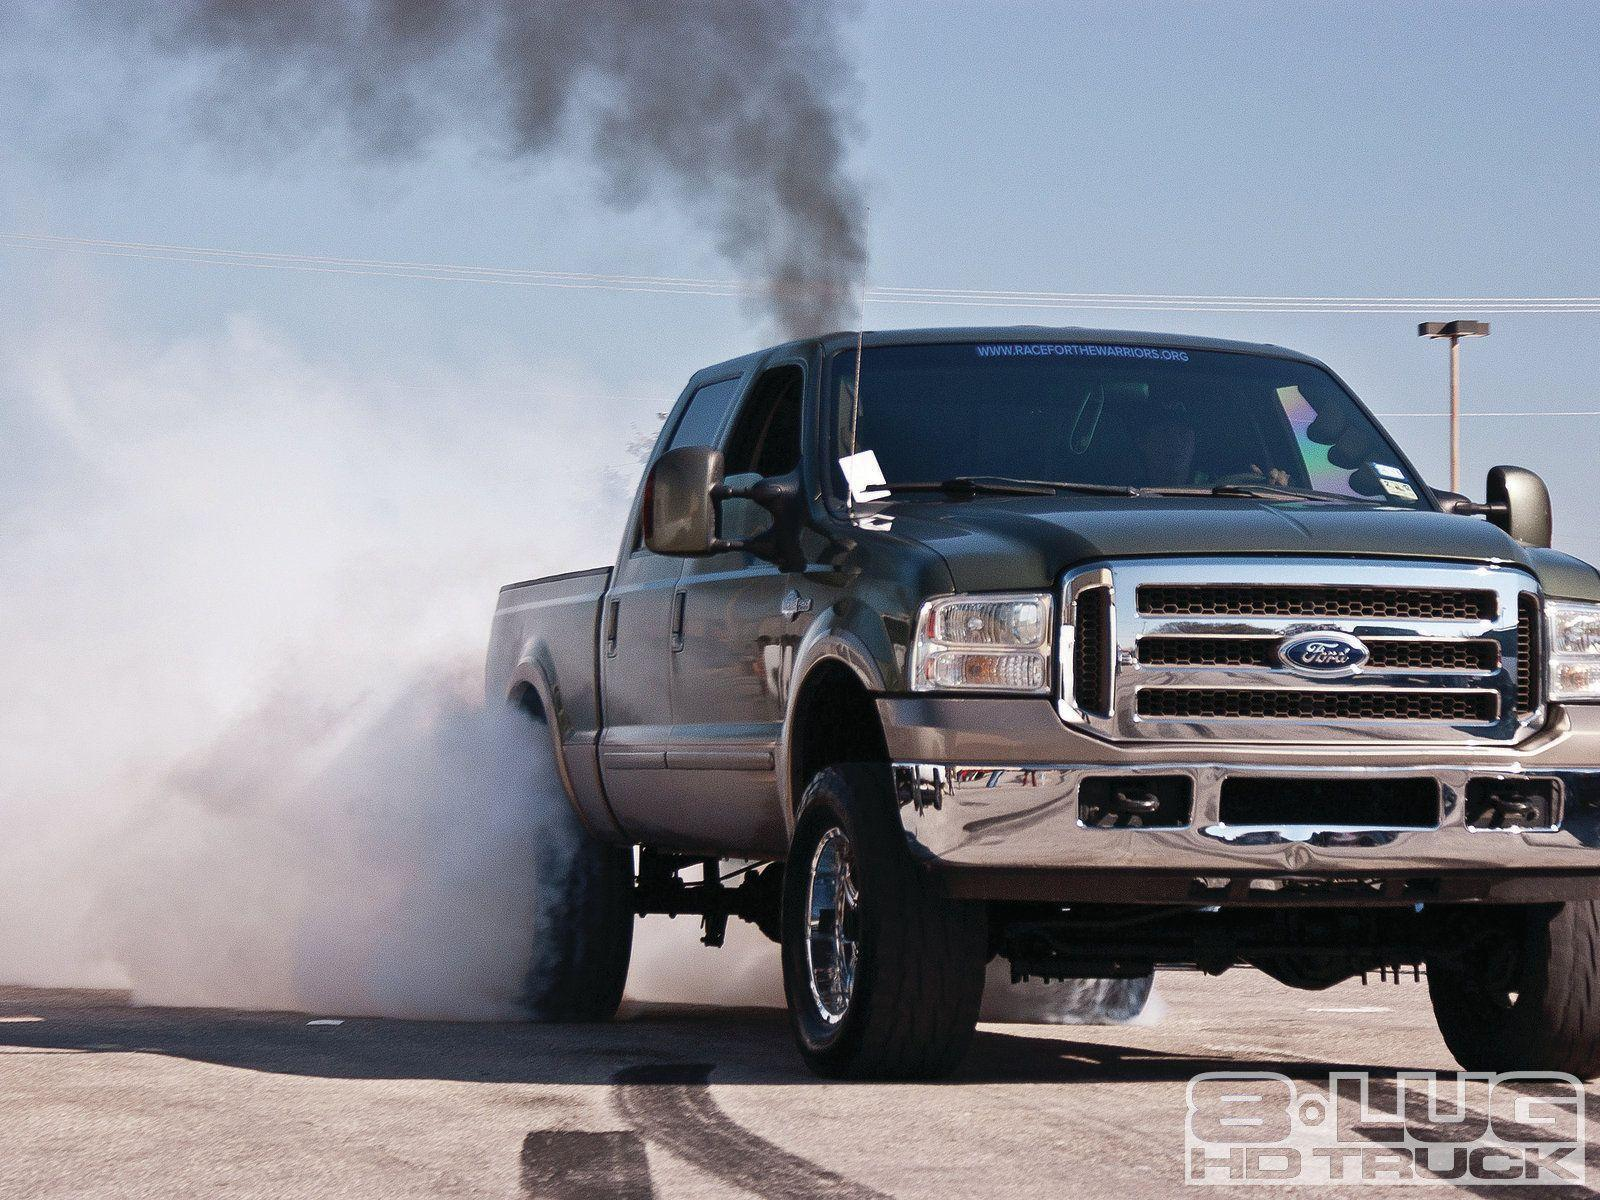 Cool Lifted Chevy Truck Wallpapers With Trucks Mudding Wallpaper